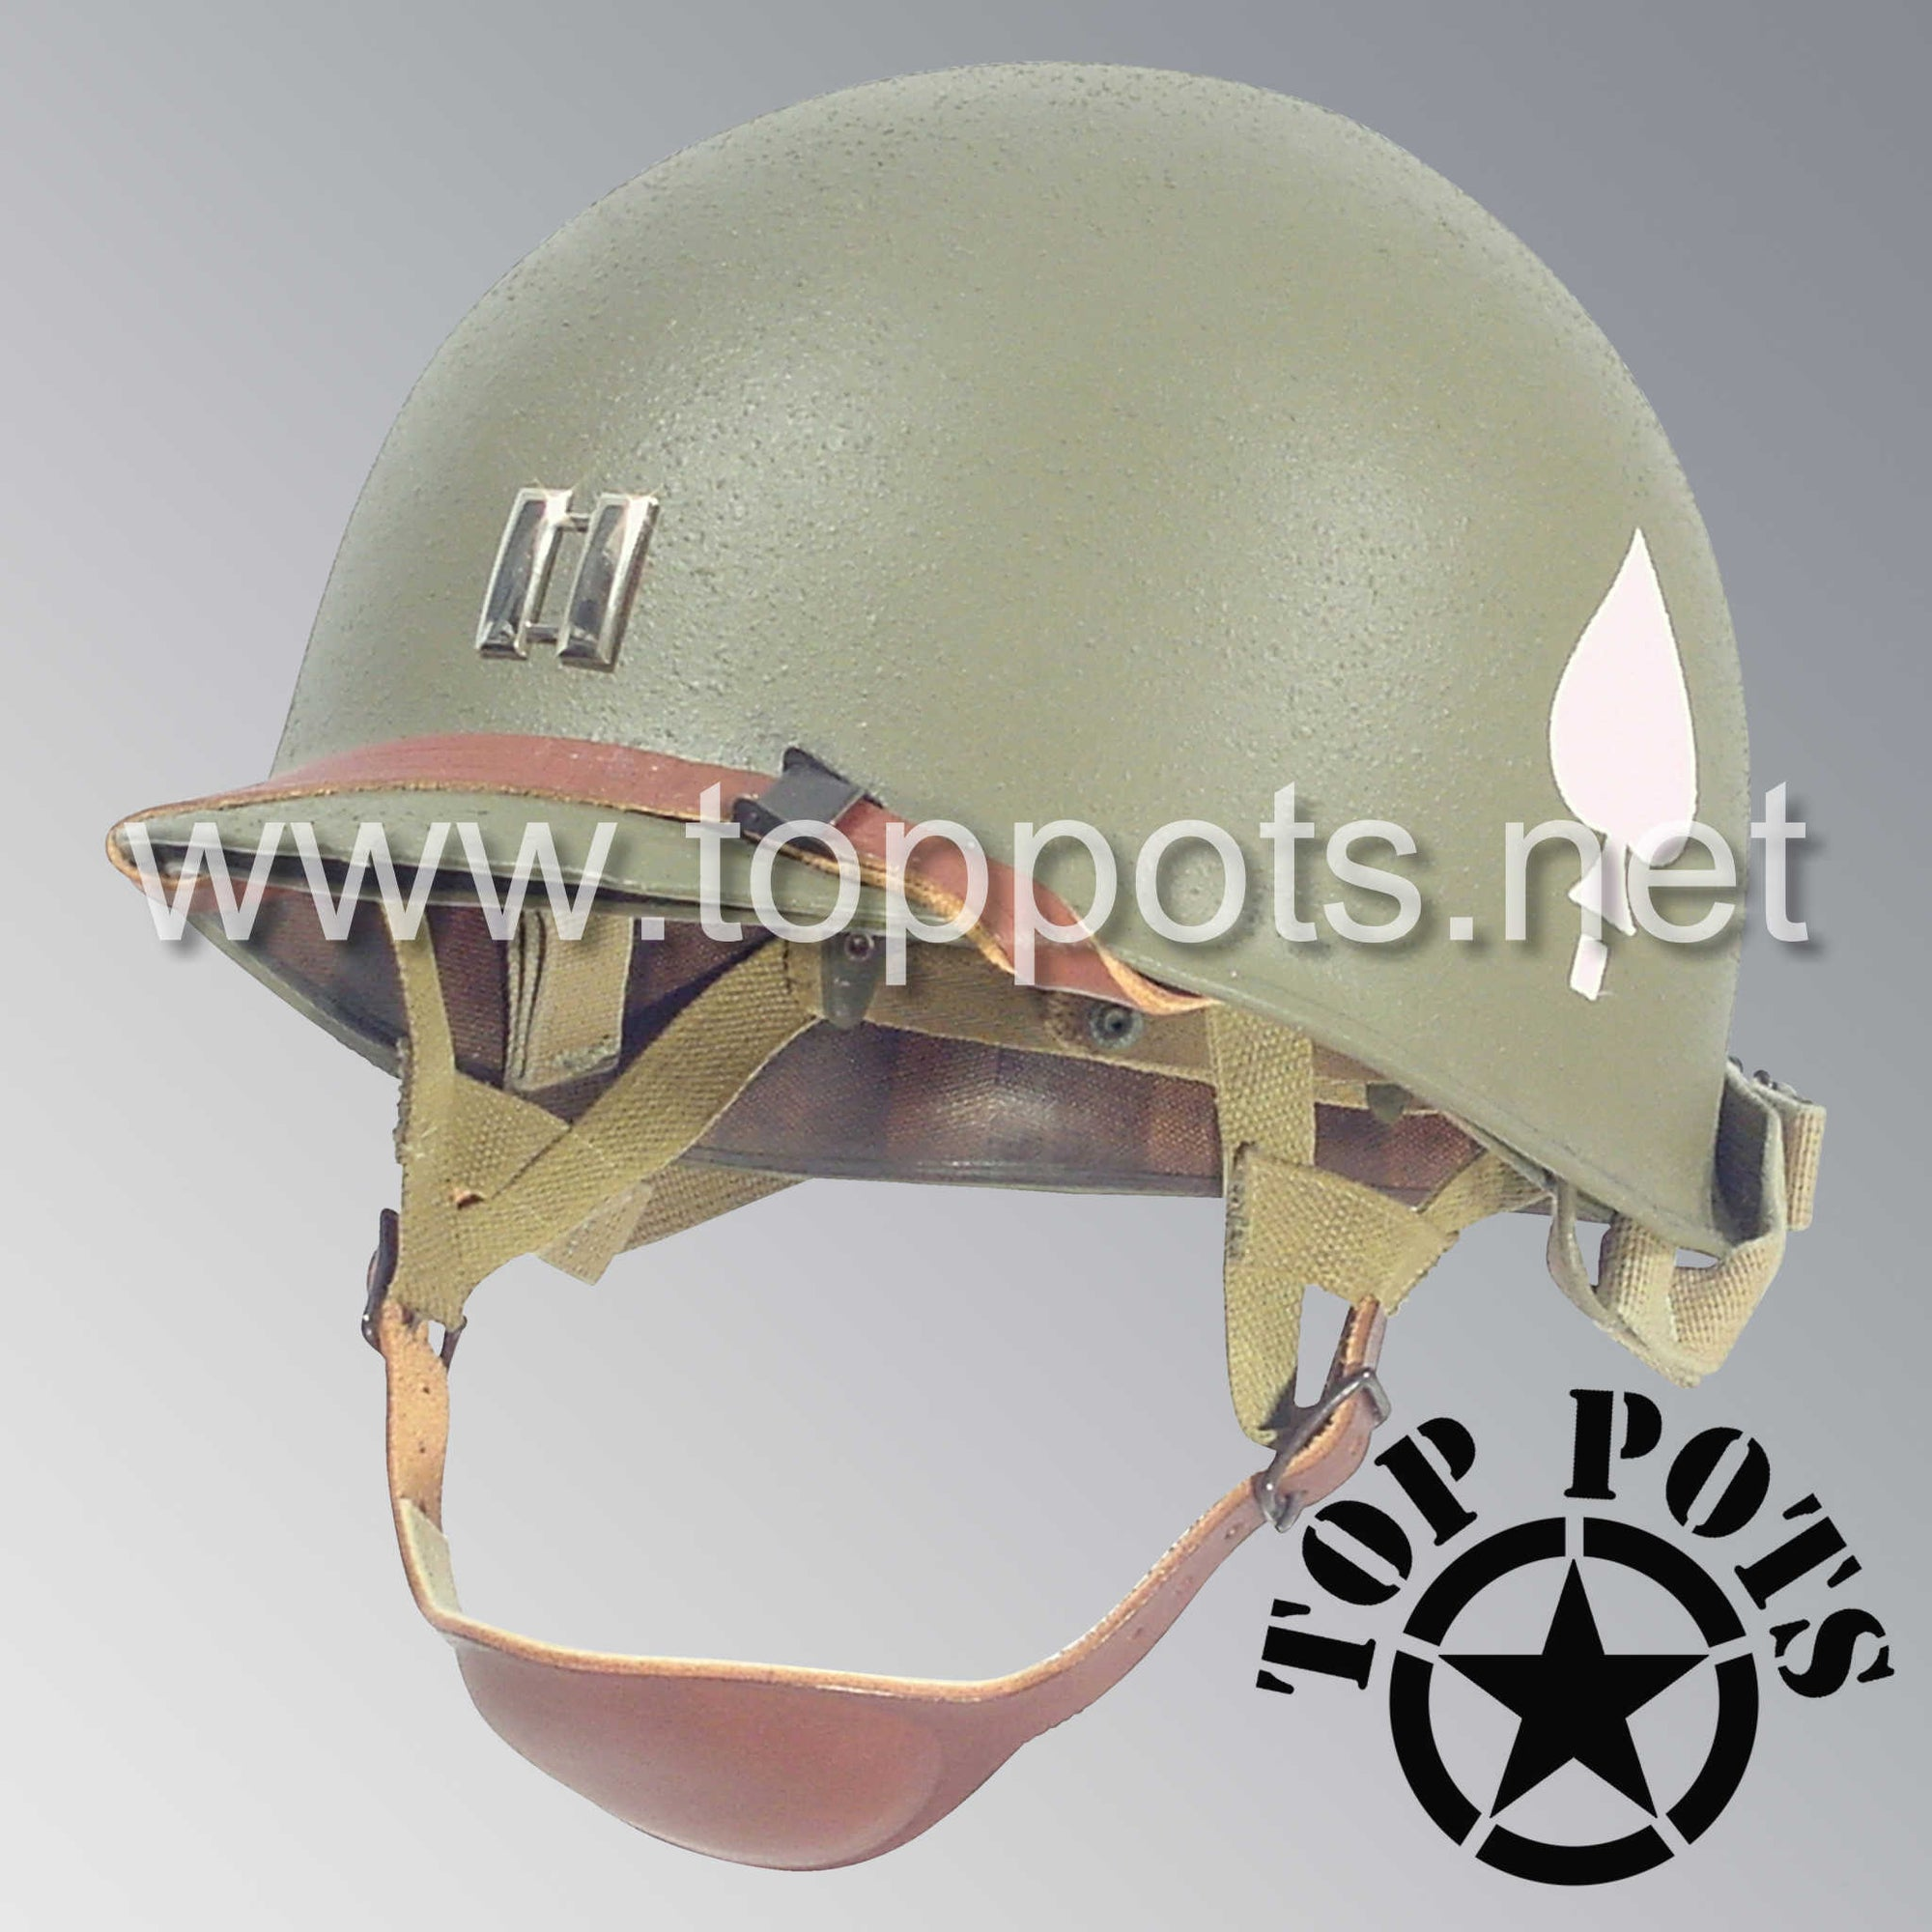 Image 1 of WWII US Army Restored Original M2 Paratrooper Airborne Helmet D Bale Shell and Liner with 506th PIR 2nd Battalion Officer Metal Captain Rank Emblem